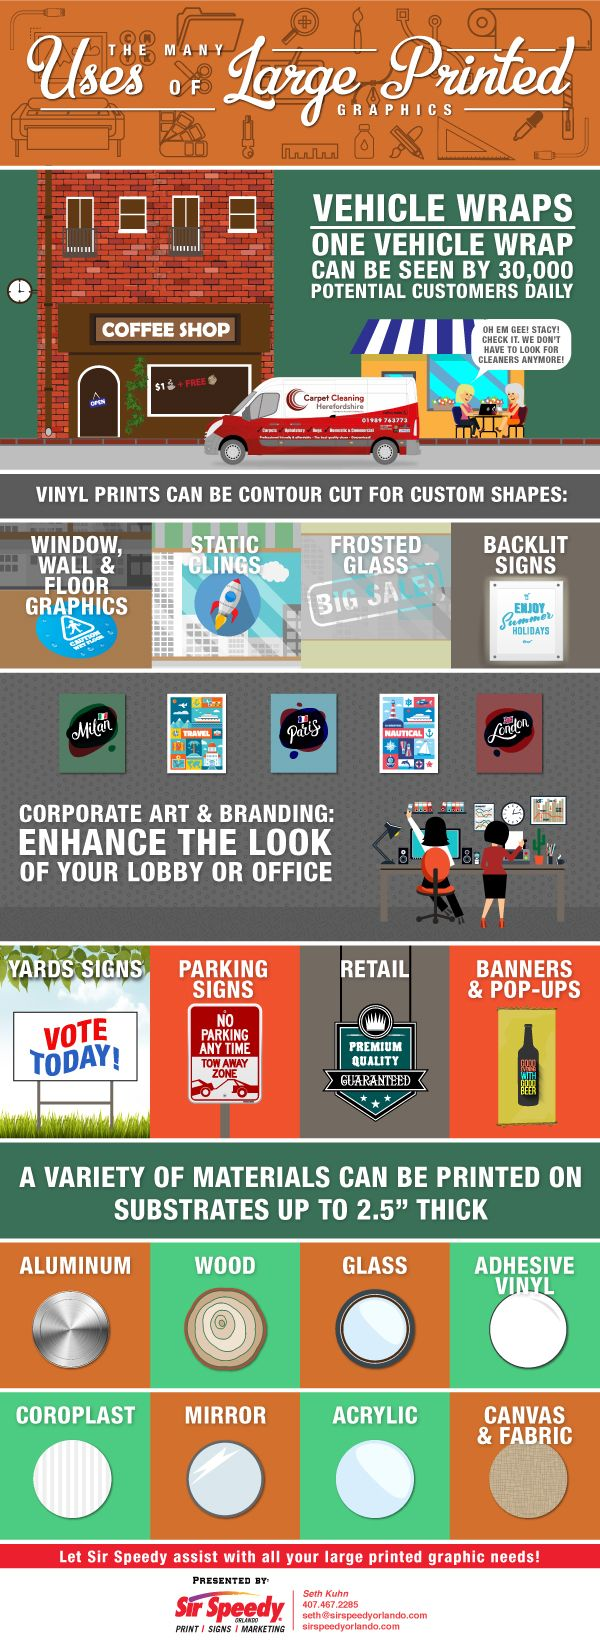 Large Printed Graphics Window Wall Floor Graphics Yard Signs Parking Signs Banners Pop Ups Floor Graphics Corporate Art Glass Sign